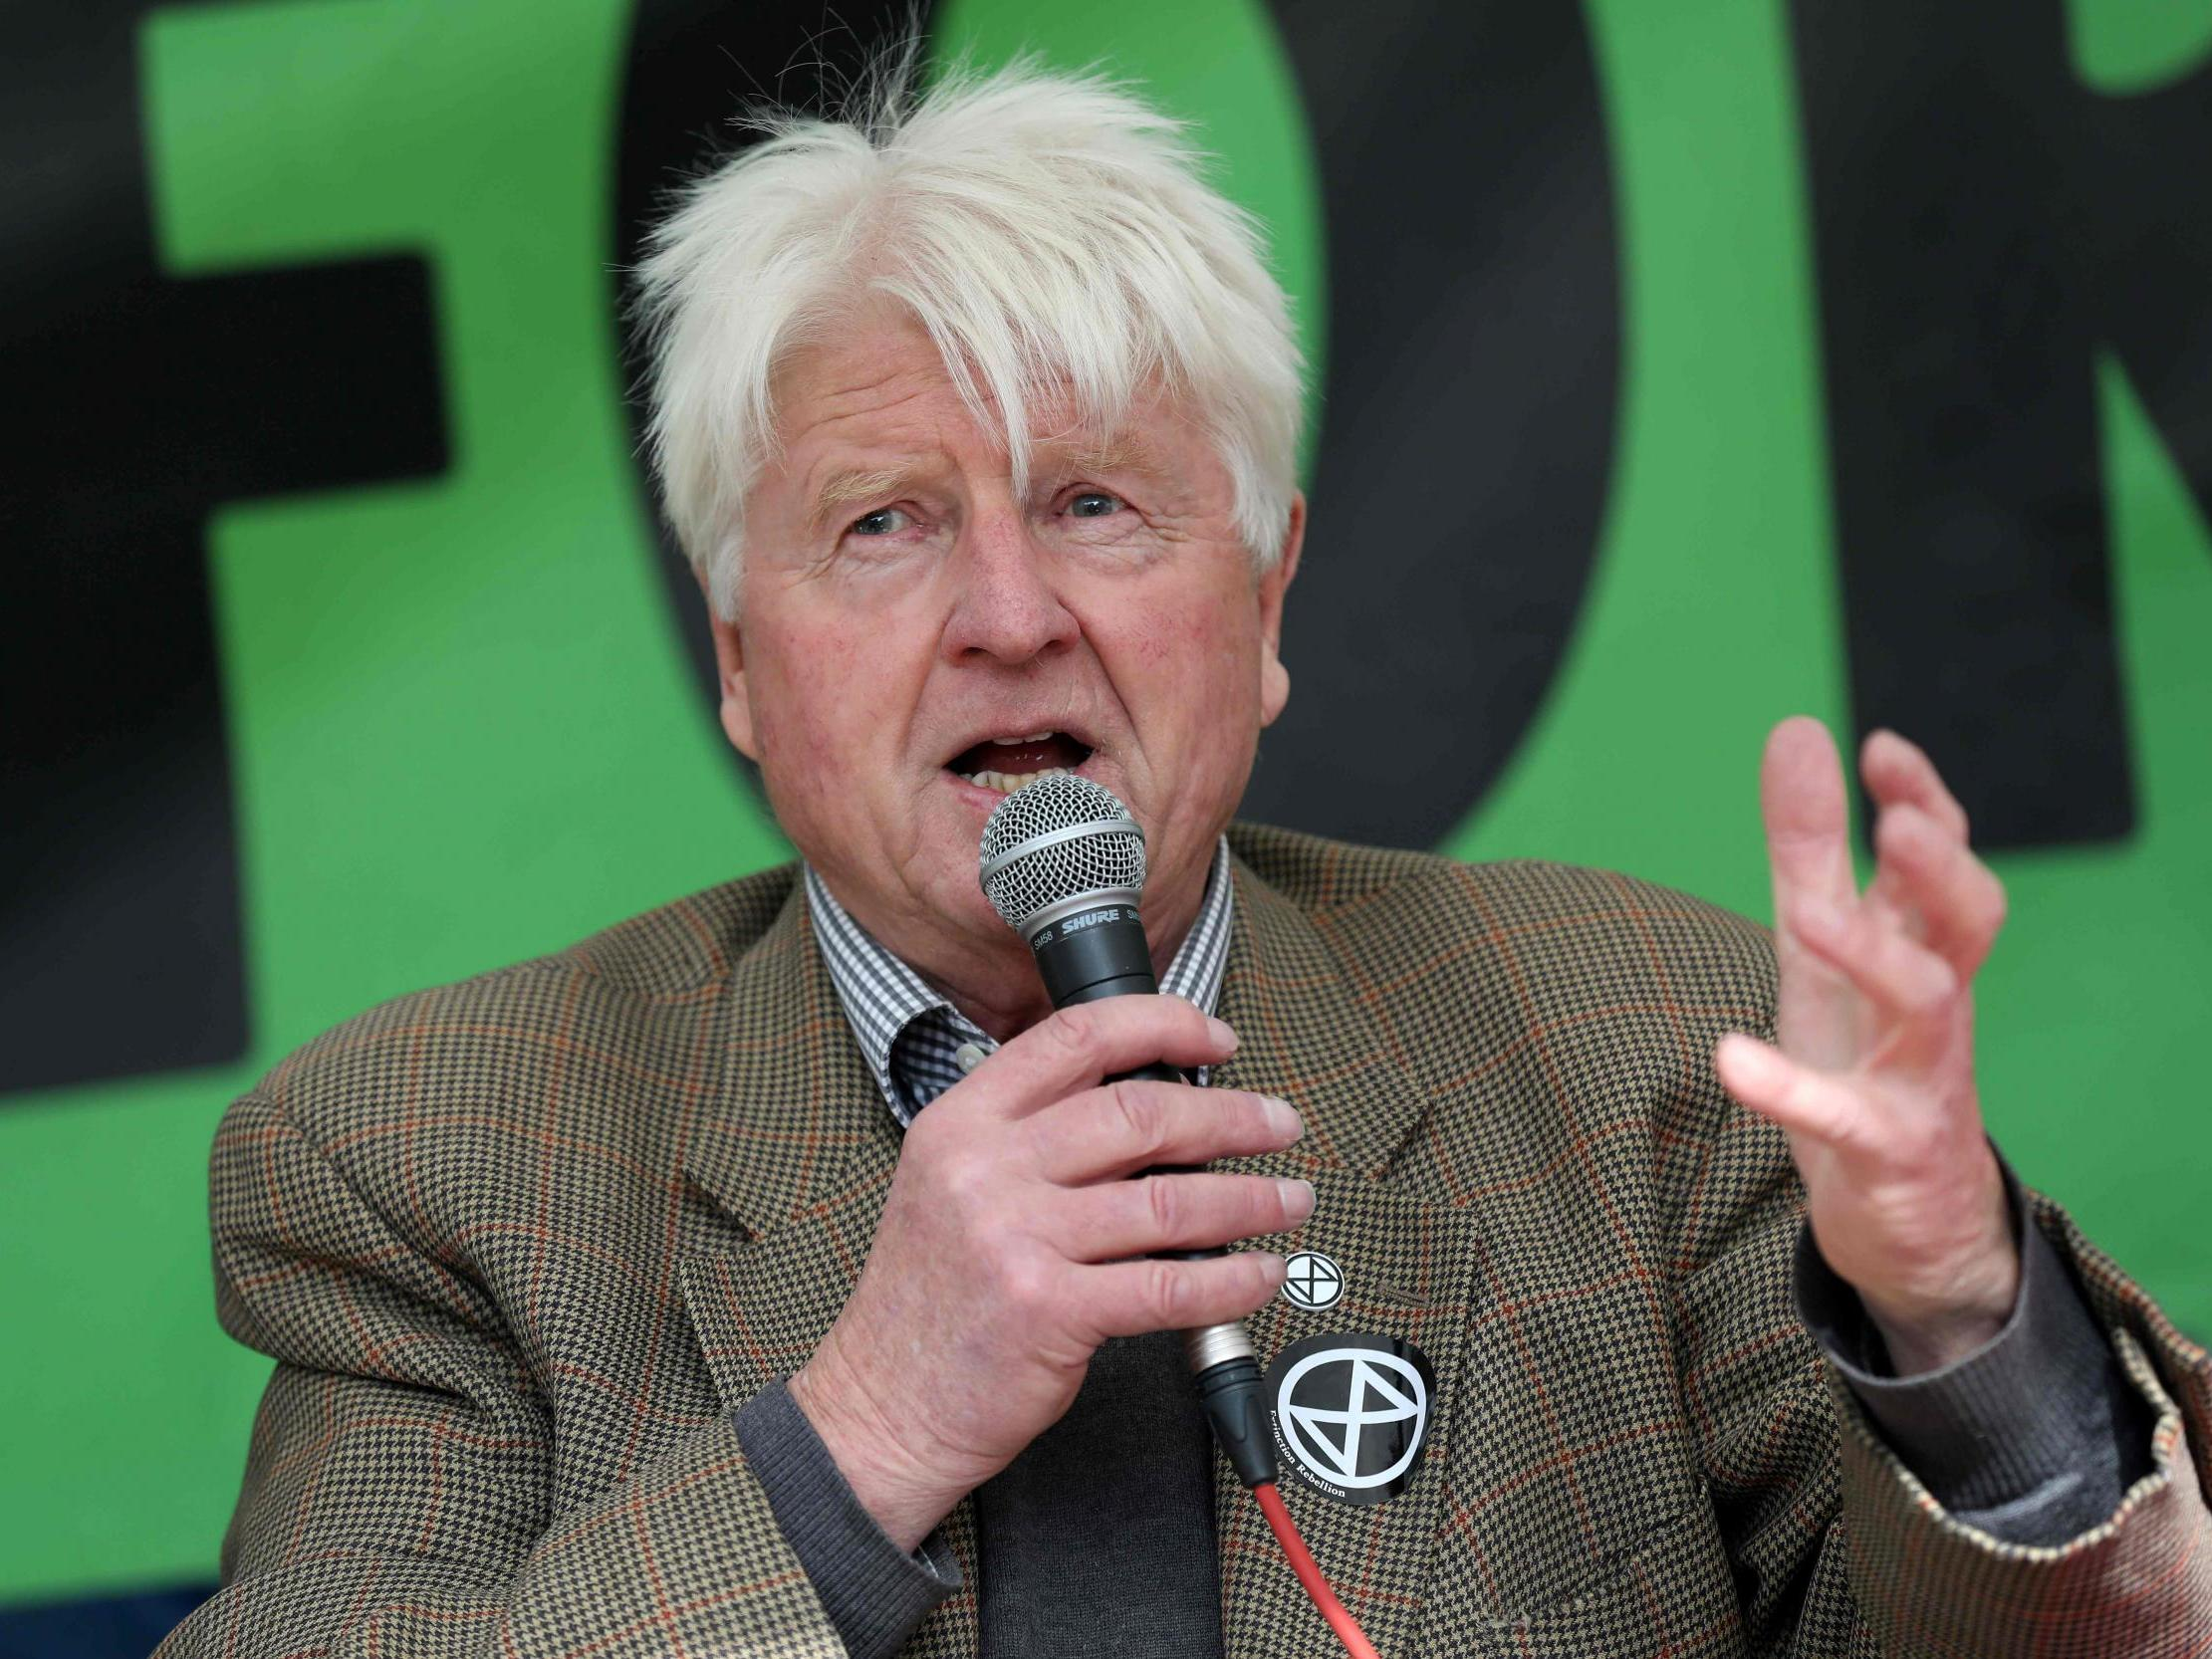 Coronavirus: Stanley Johnson claims he predicted Covid-19 pandemic in novel published 40 years ago